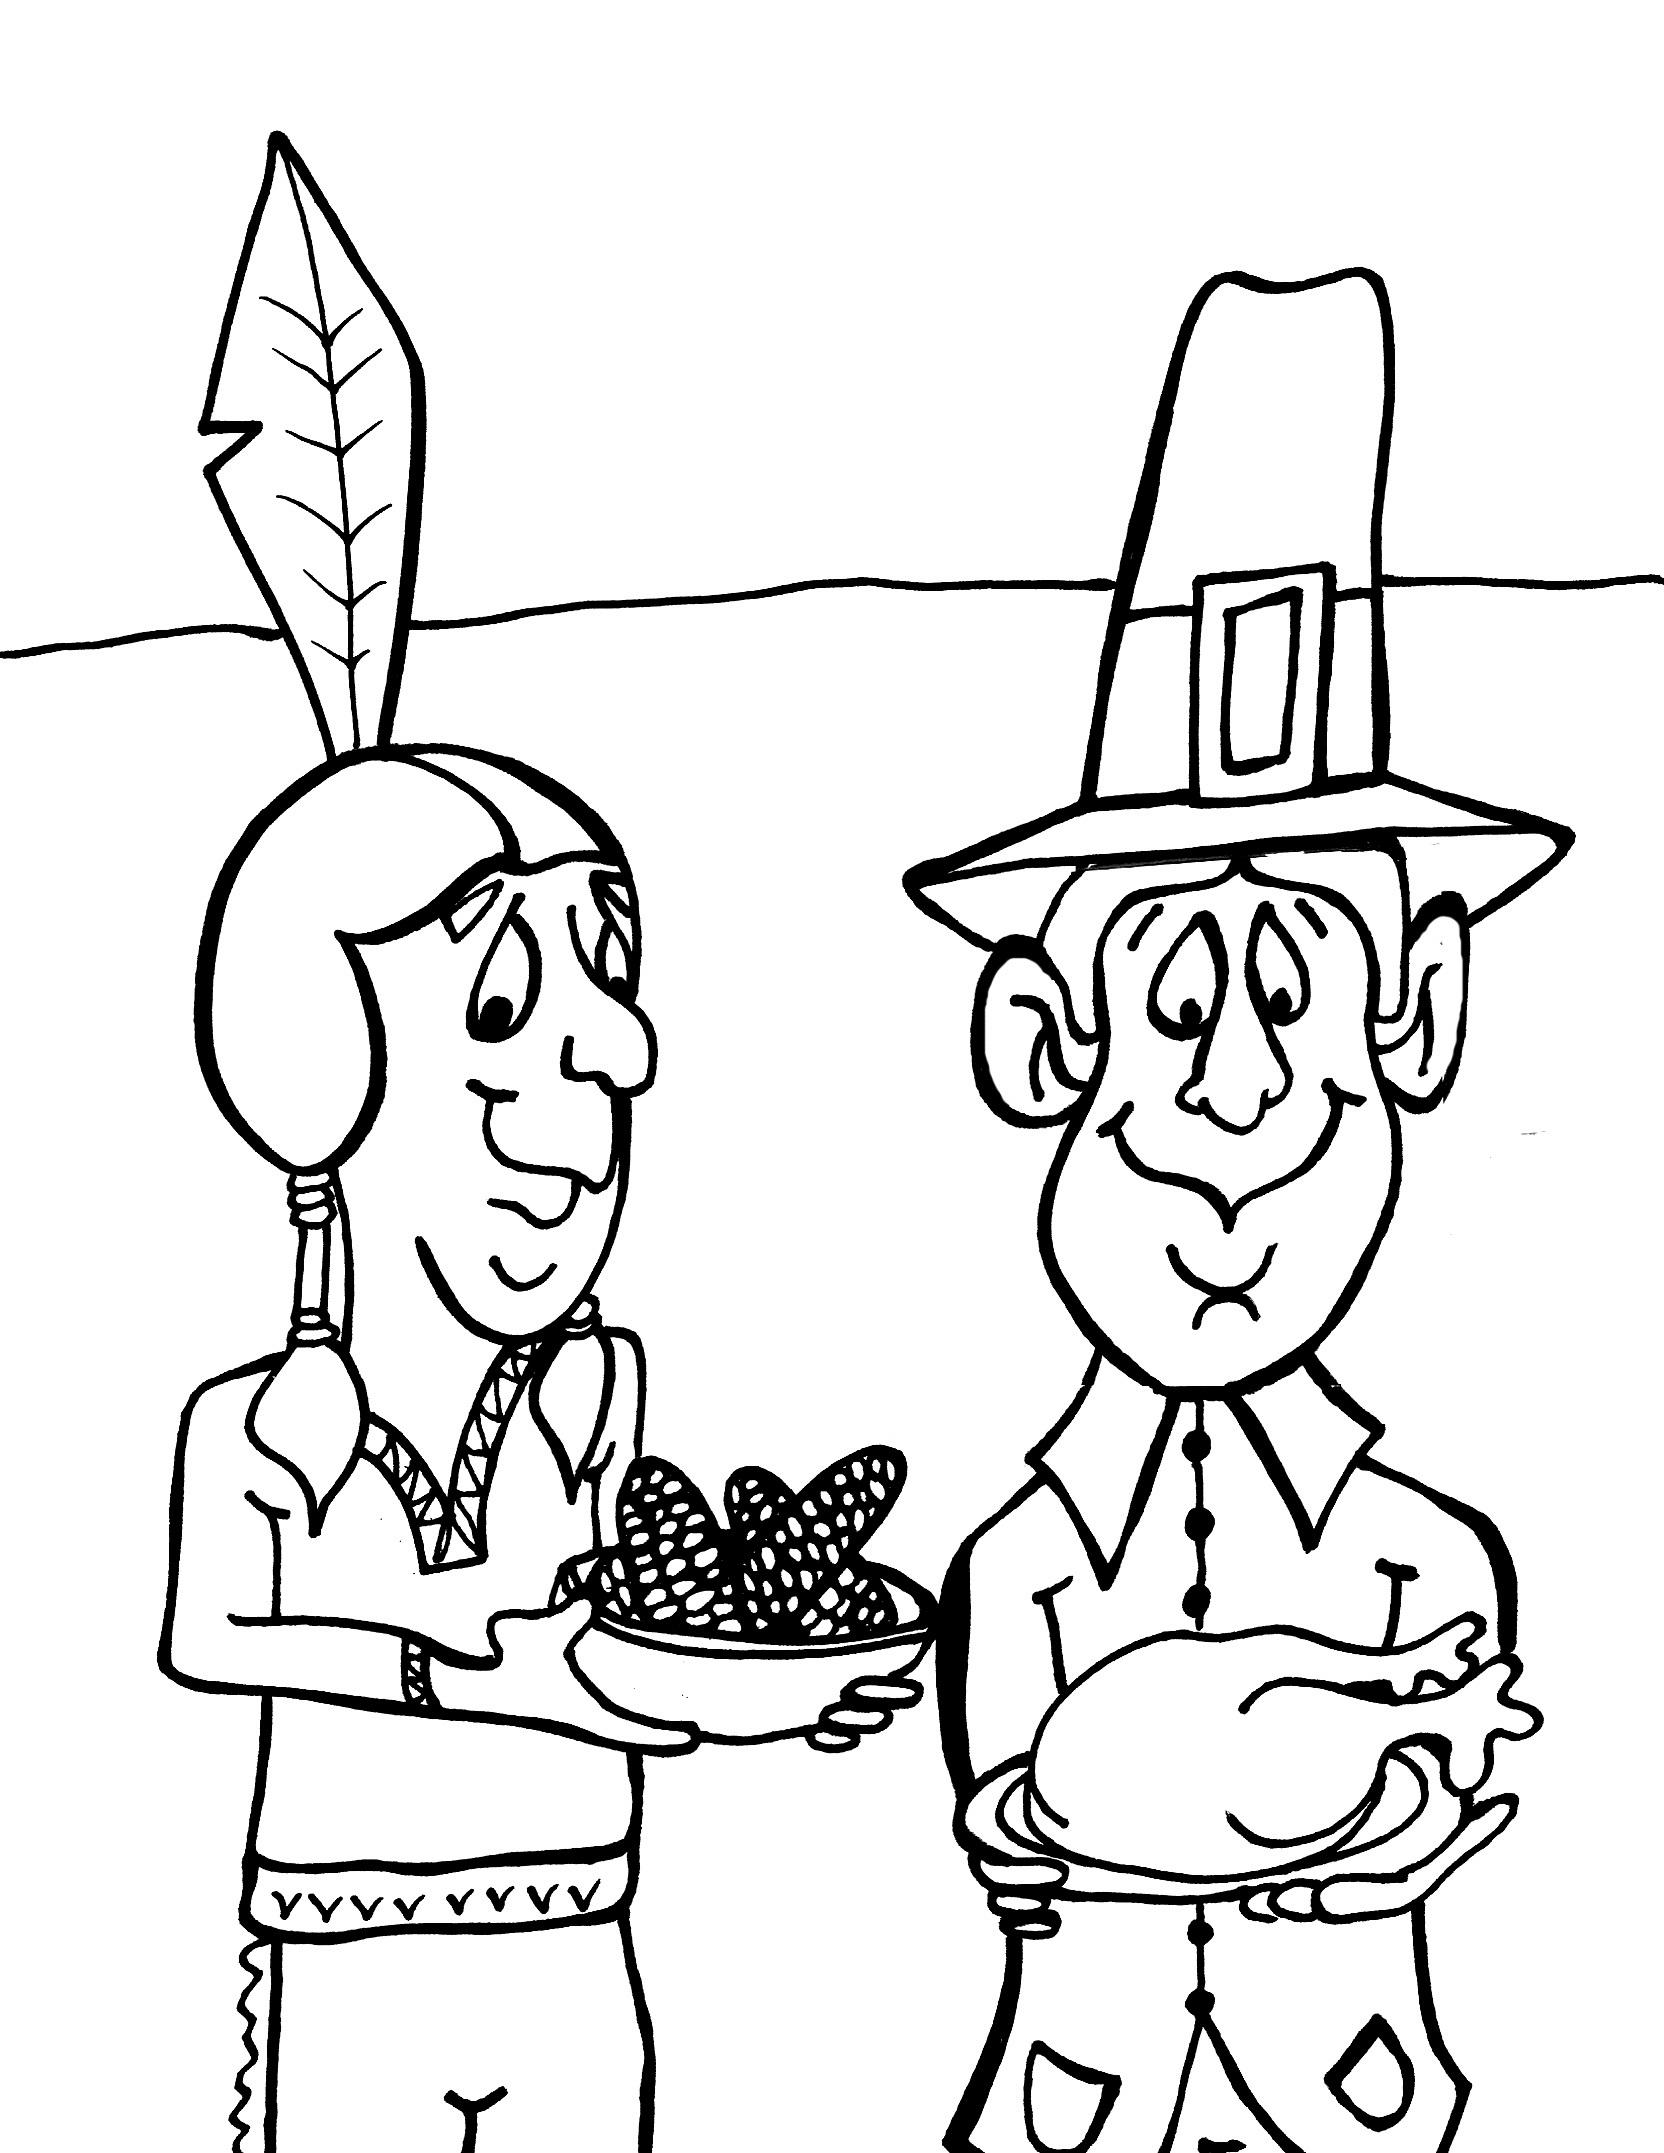 Free Printable Thanksgiving Coloring Pages For Kids